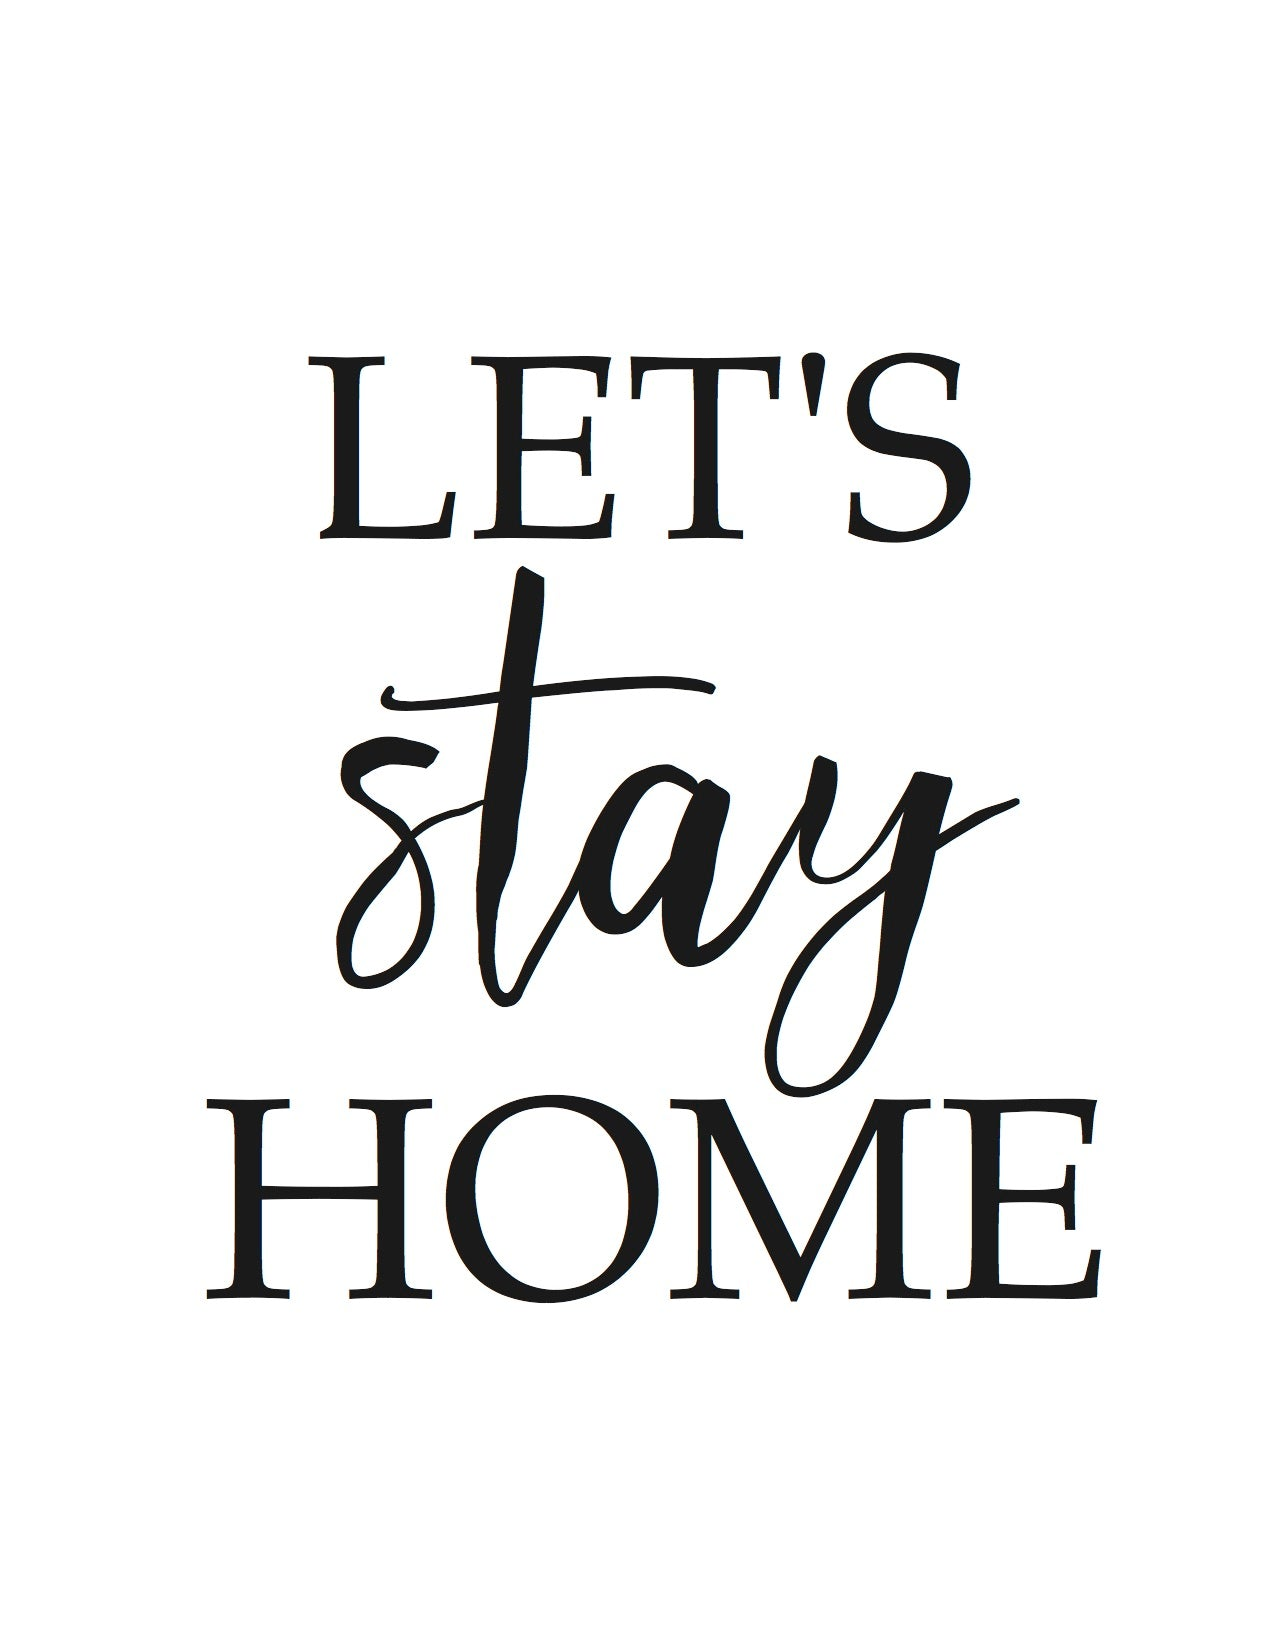 8x10 Print: Let's stay home